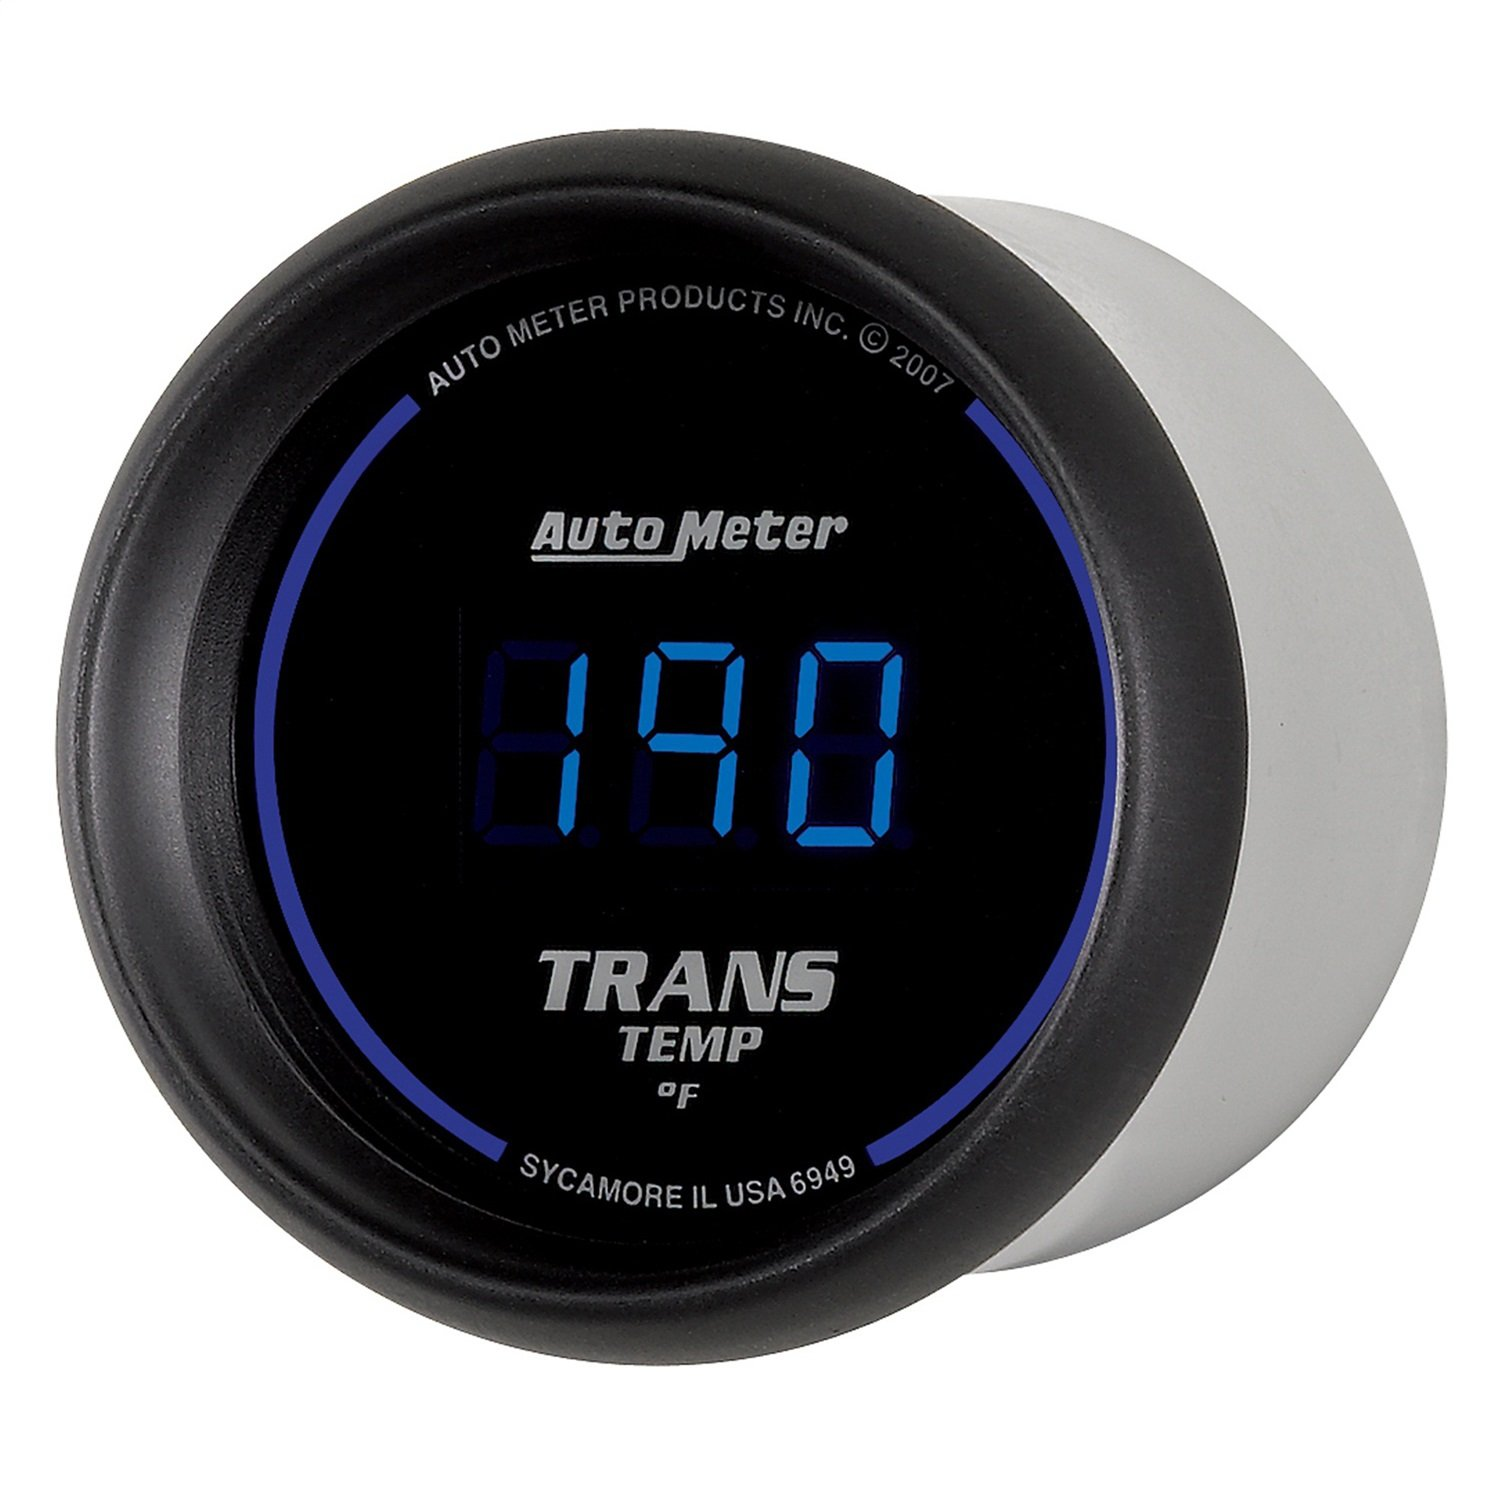 Auto Meter 6949 Cobalt Digital Transmission Temperature Gauge by Auto Meter